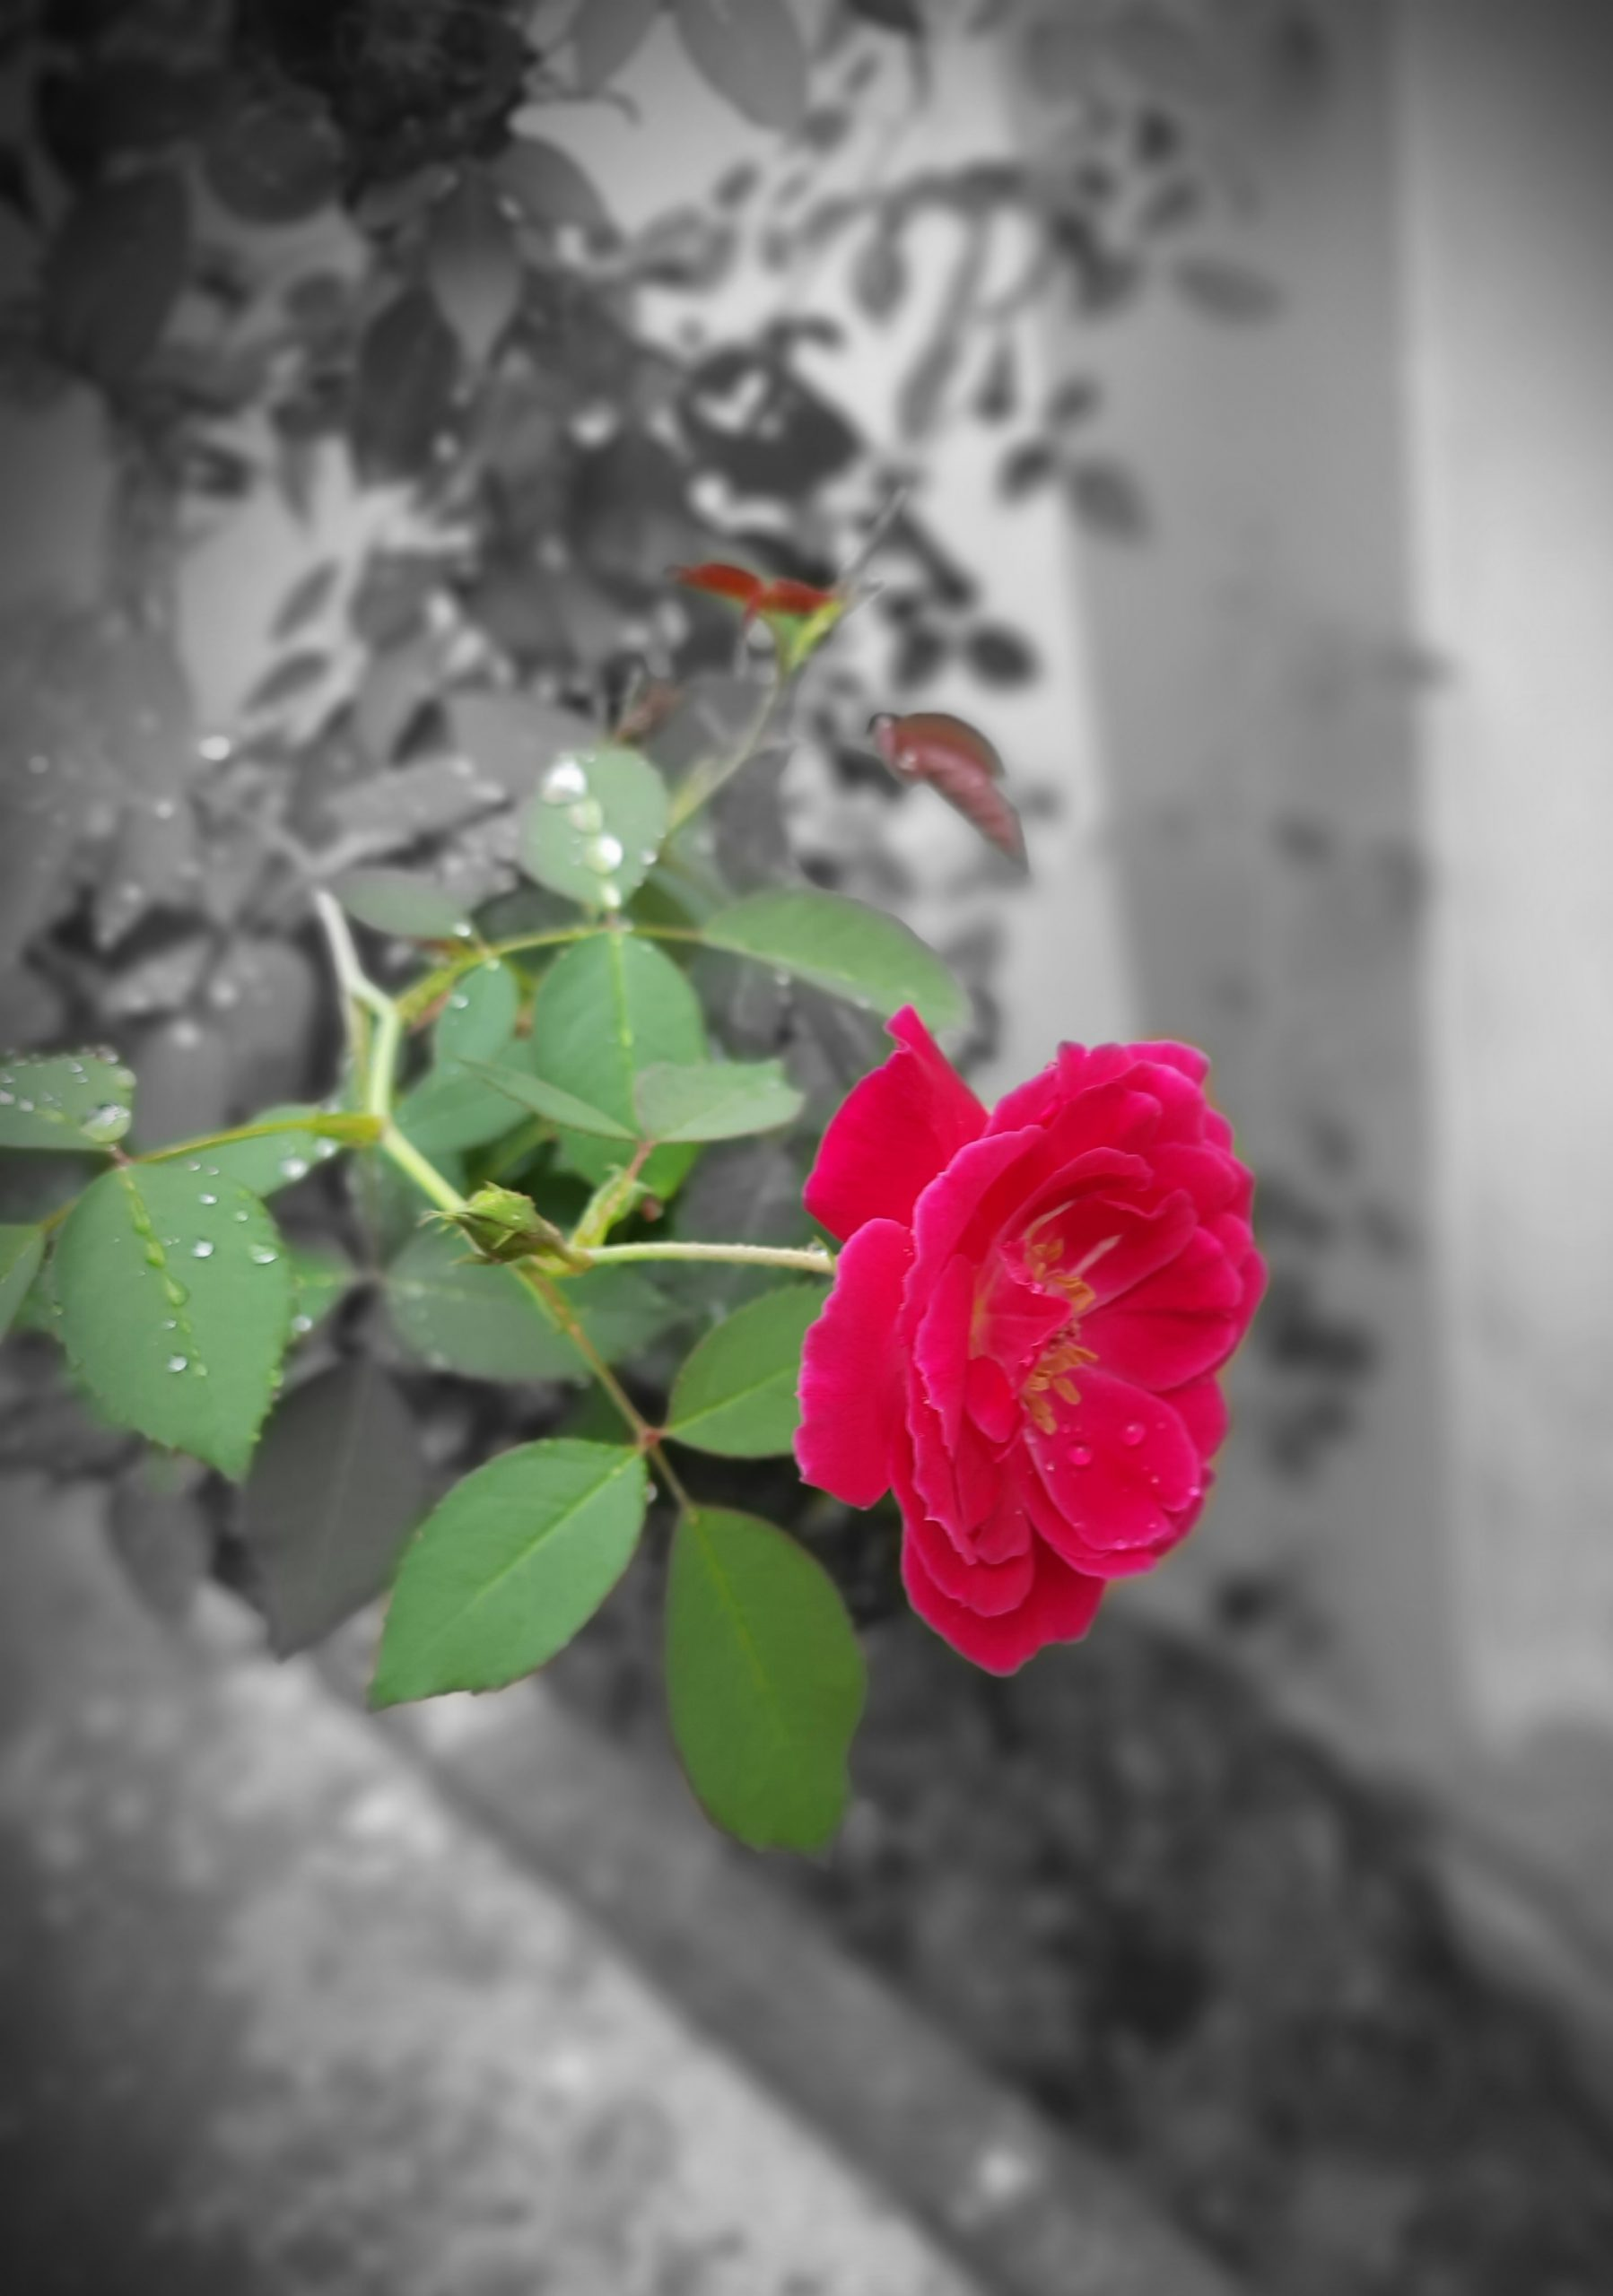 A fresh red rose